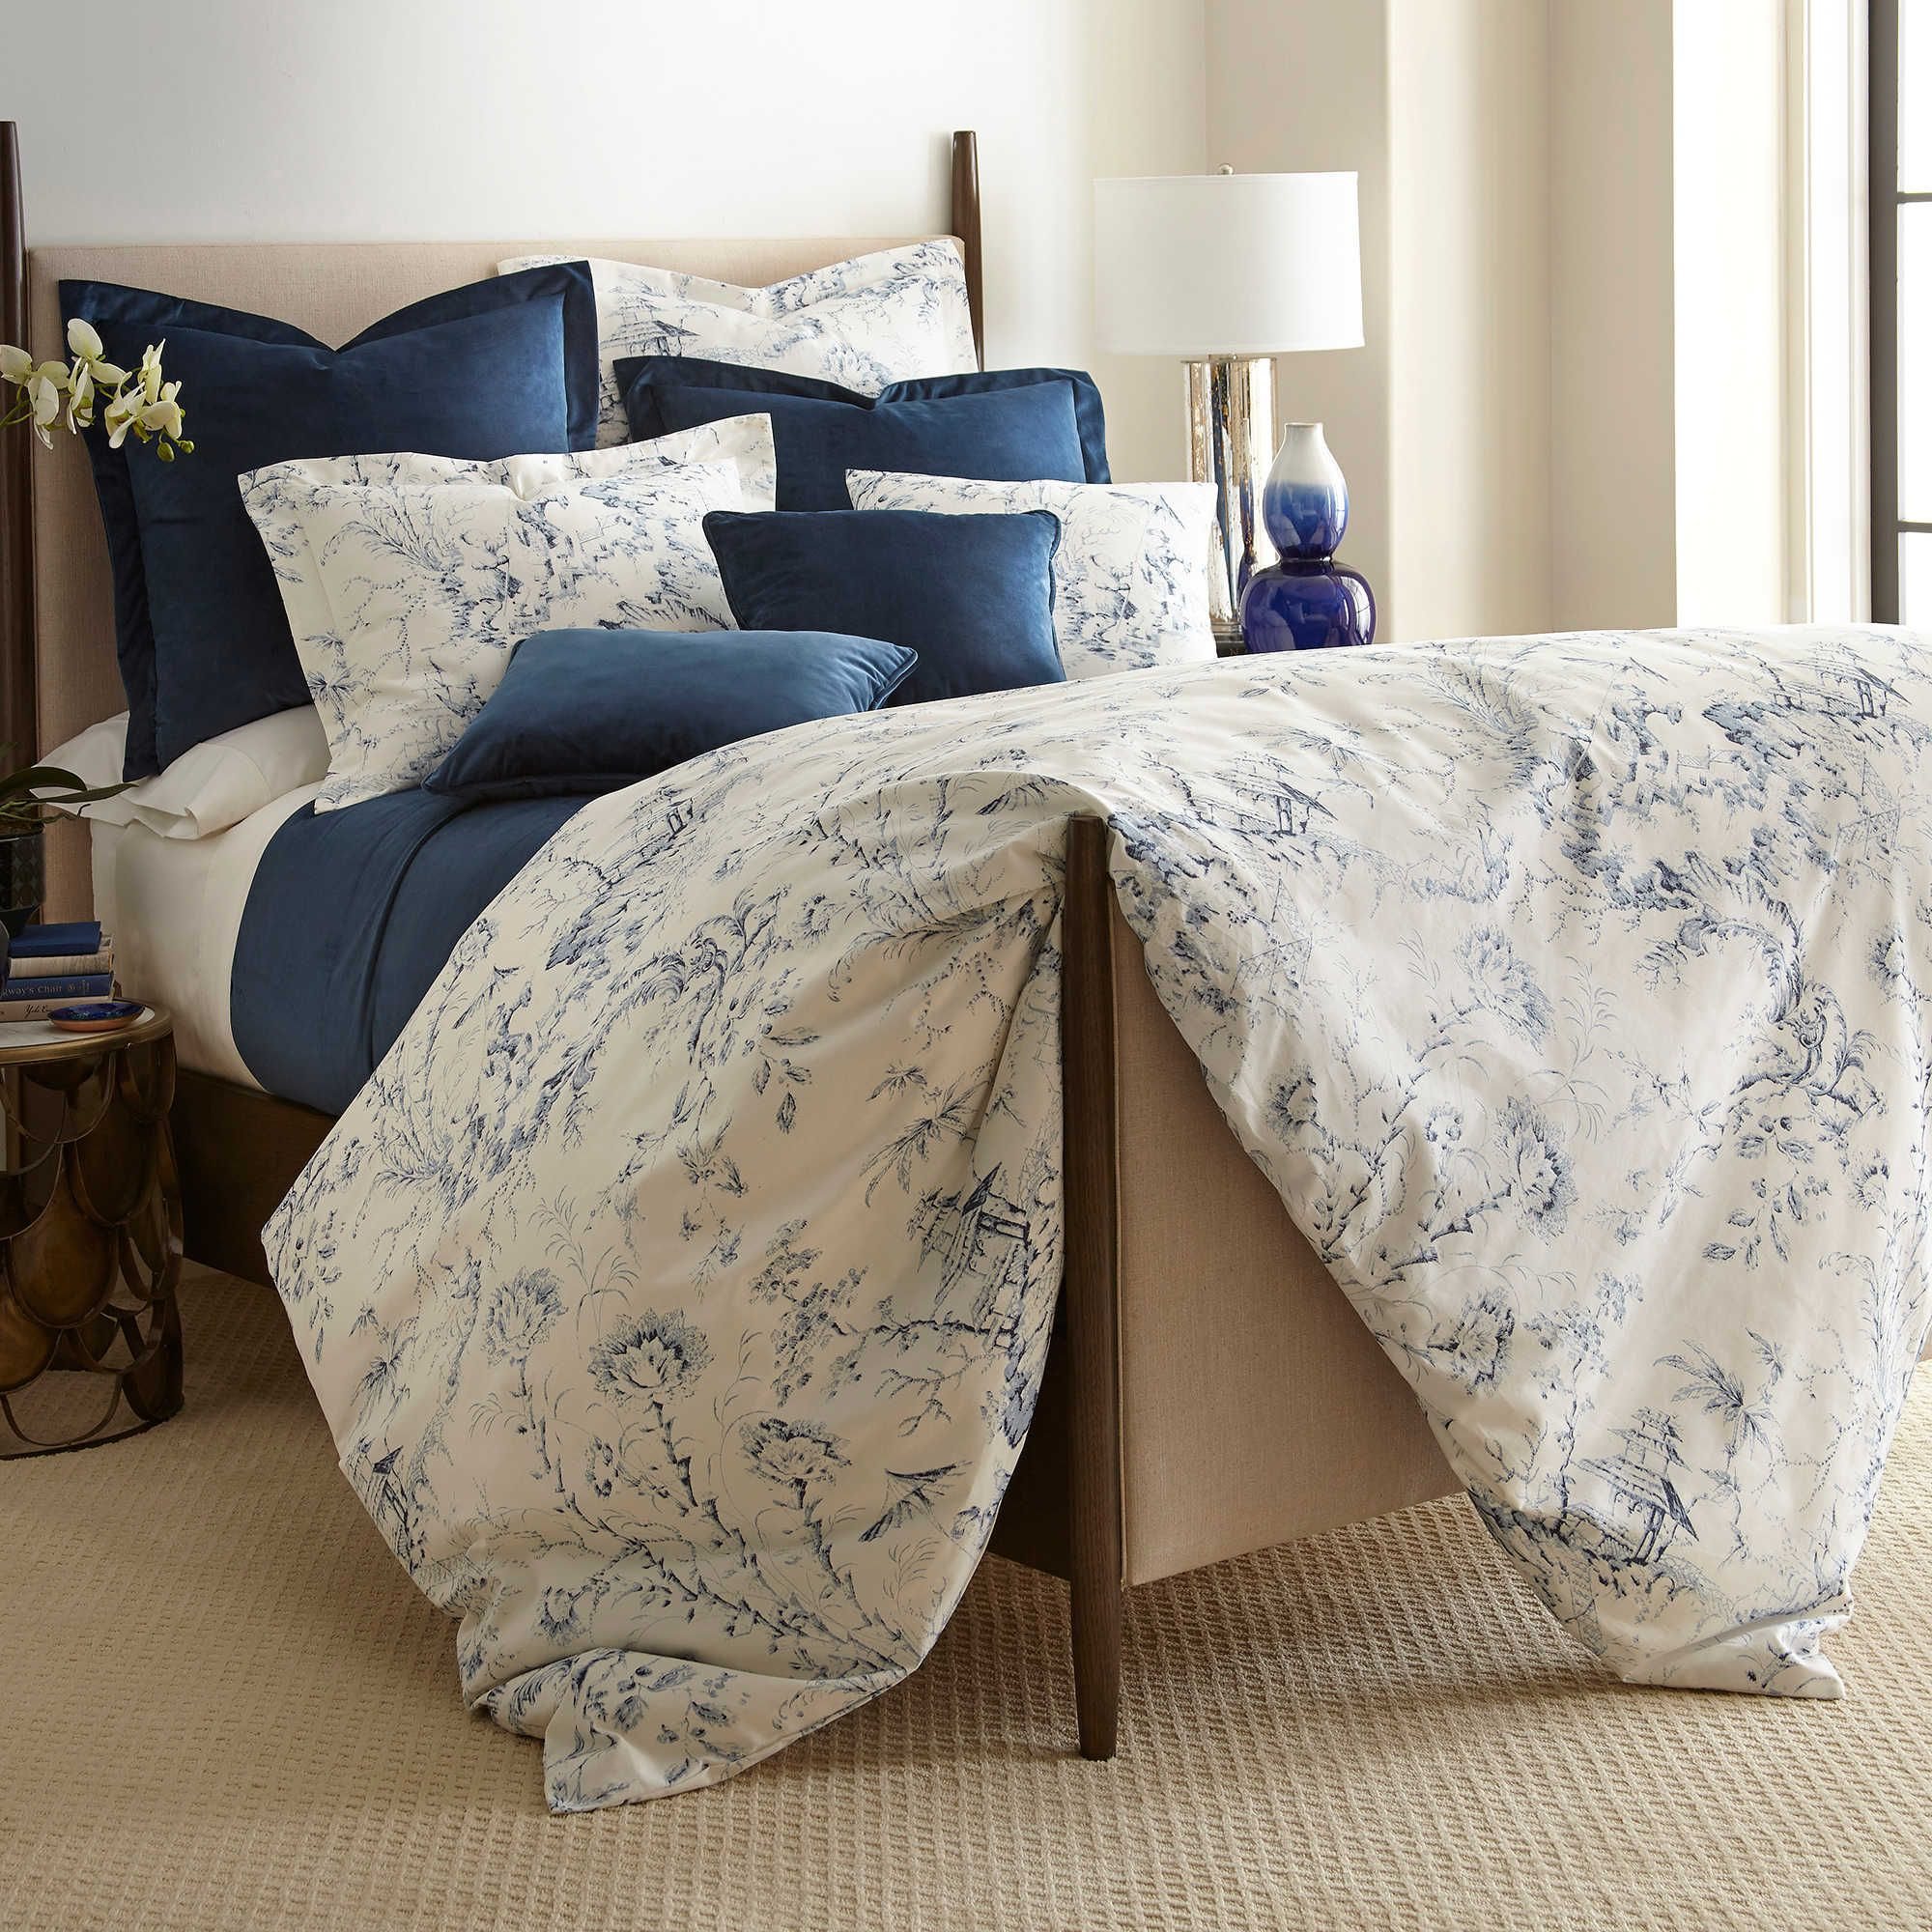 comforter duvet full set king compassion tie comforters info california dye cover template